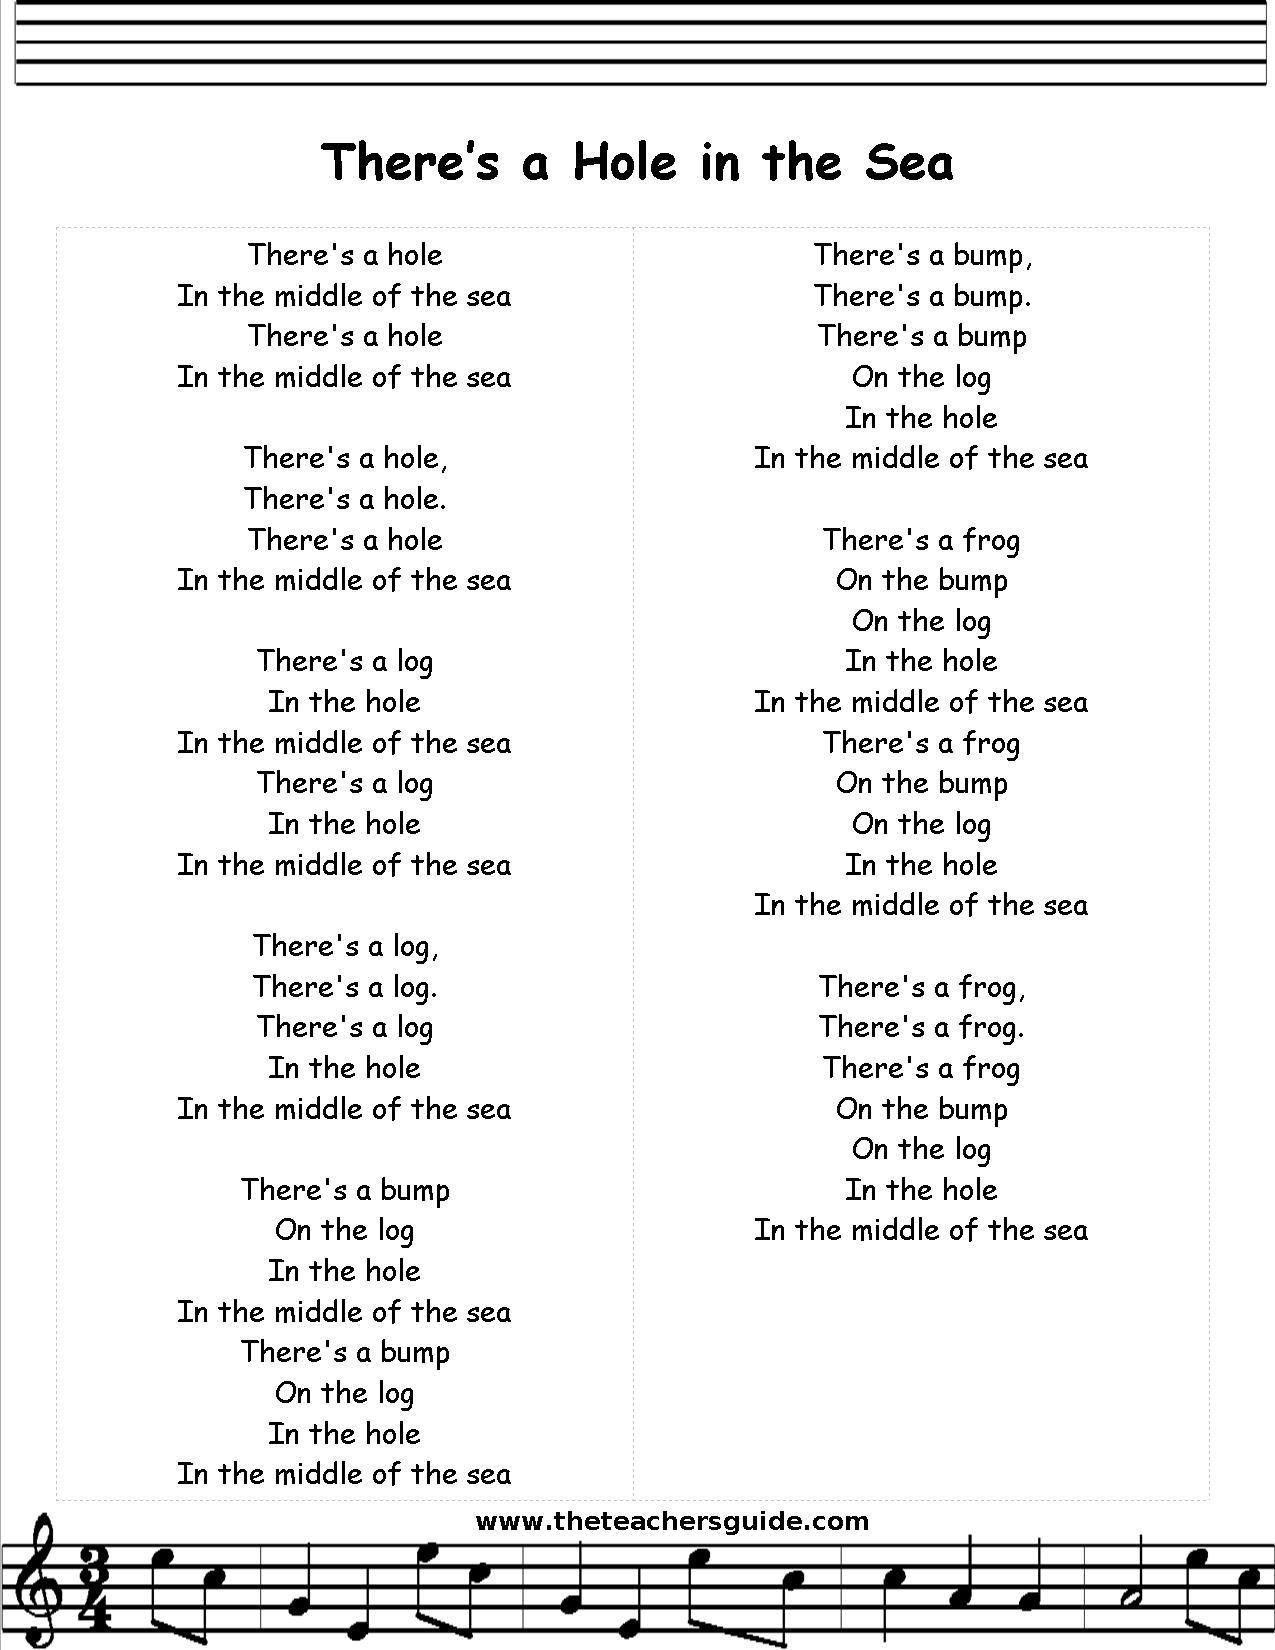 Hole In The Middle Of The Sea Lyrics Printout